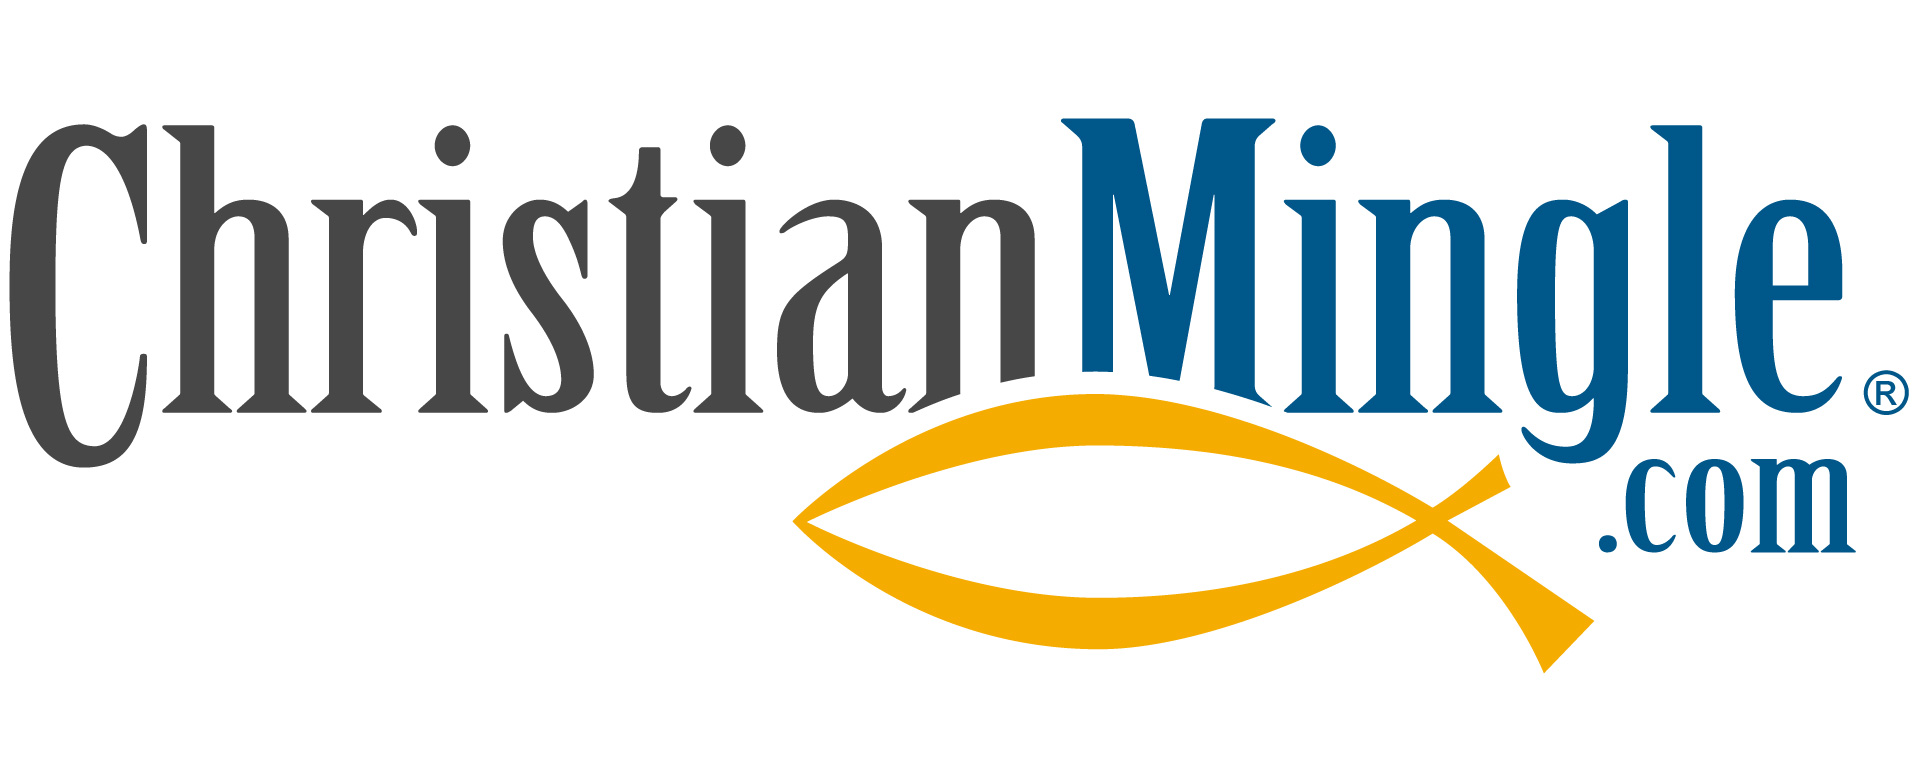 Christian mingle promo code free month